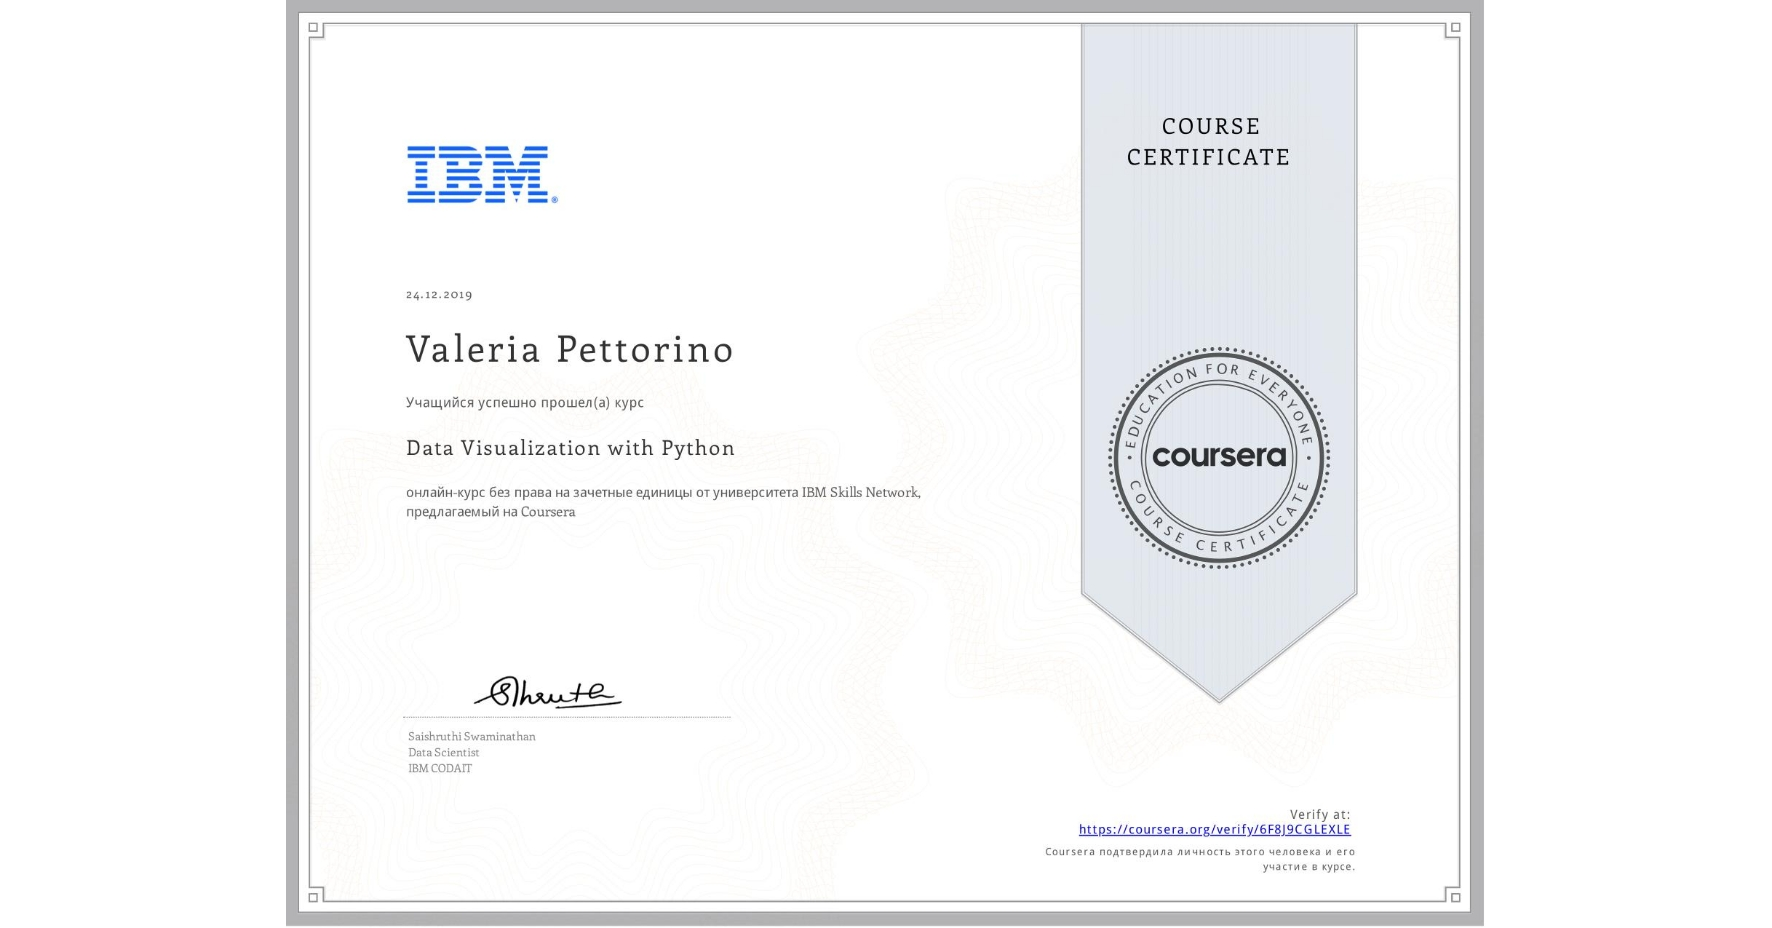 View certificate for Valeria Pettorino, Data Visualization with Python, an online non-credit course authorized by IBM and offered through Coursera